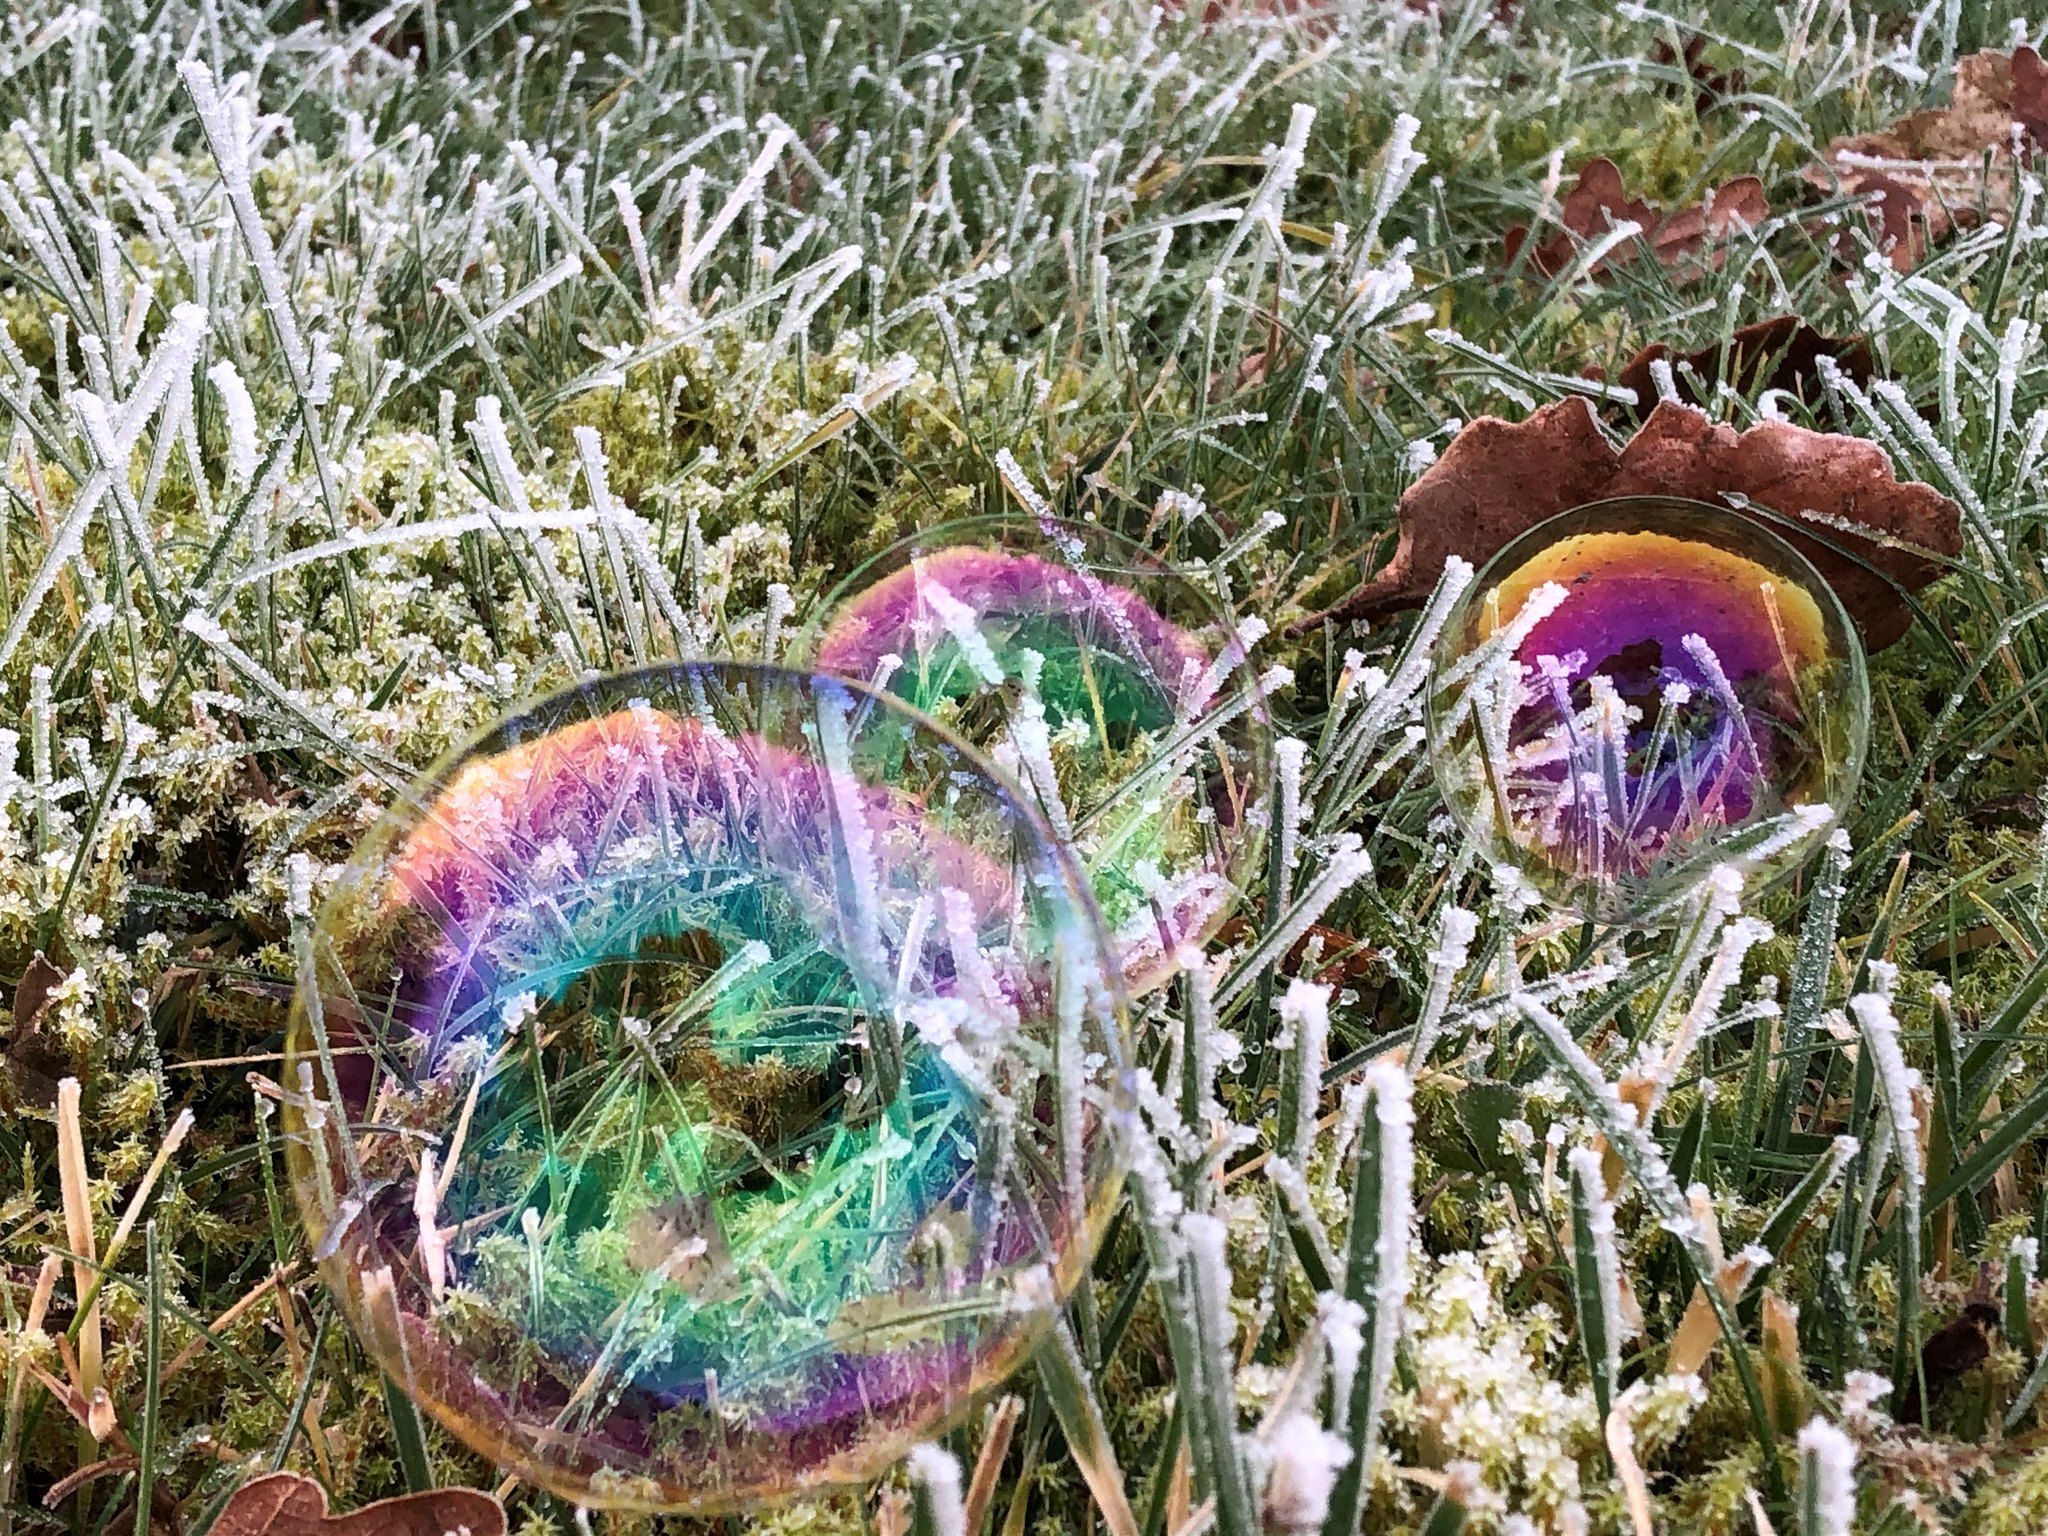 frozen bubbles in the grass